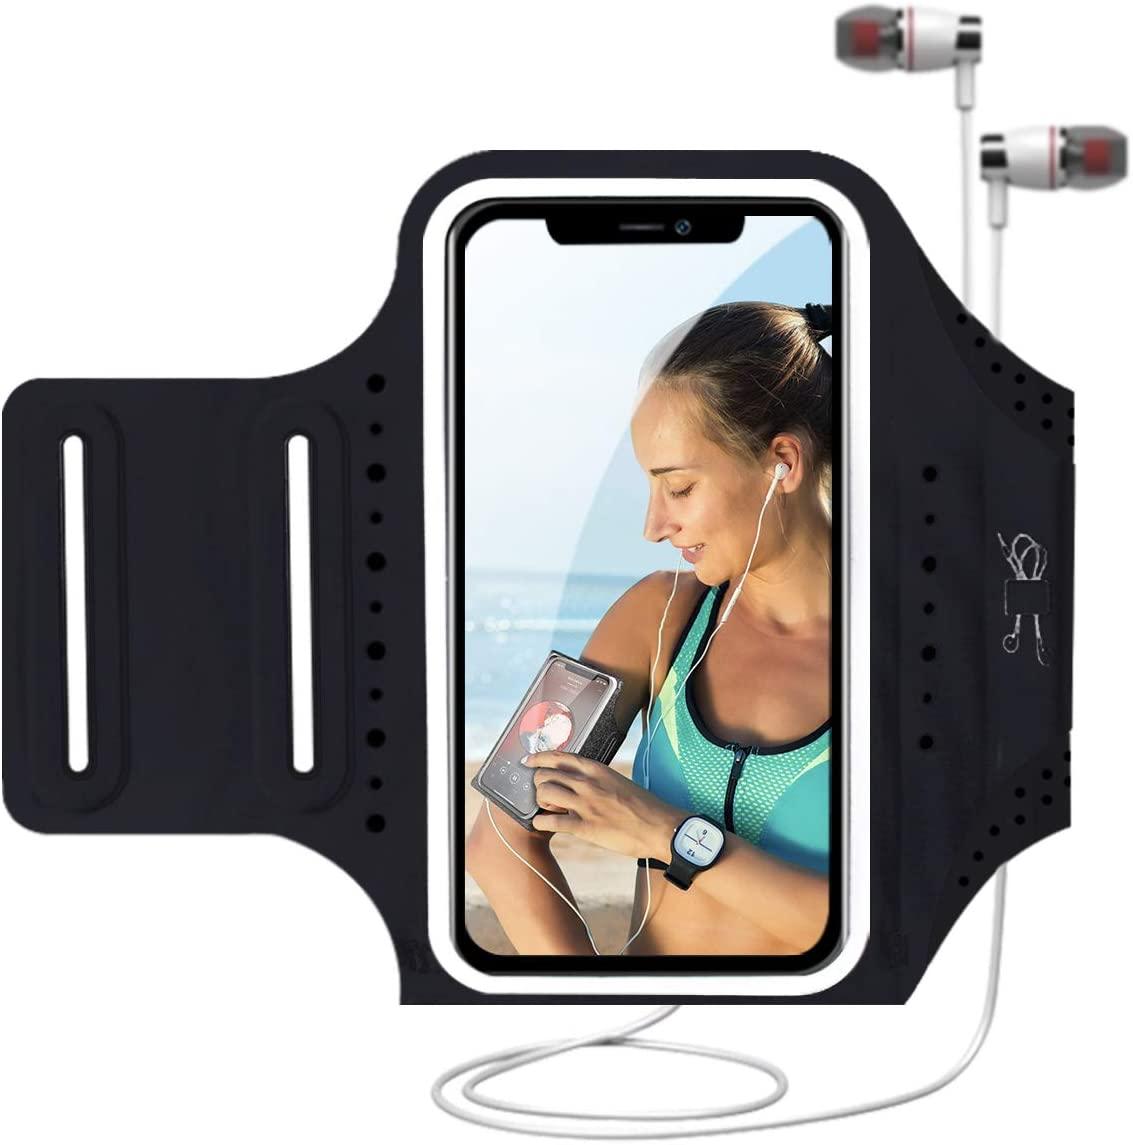 MILPROX Cell Phone Armband Arm Complete Free Shipping Waterproof Holde Special price Universal